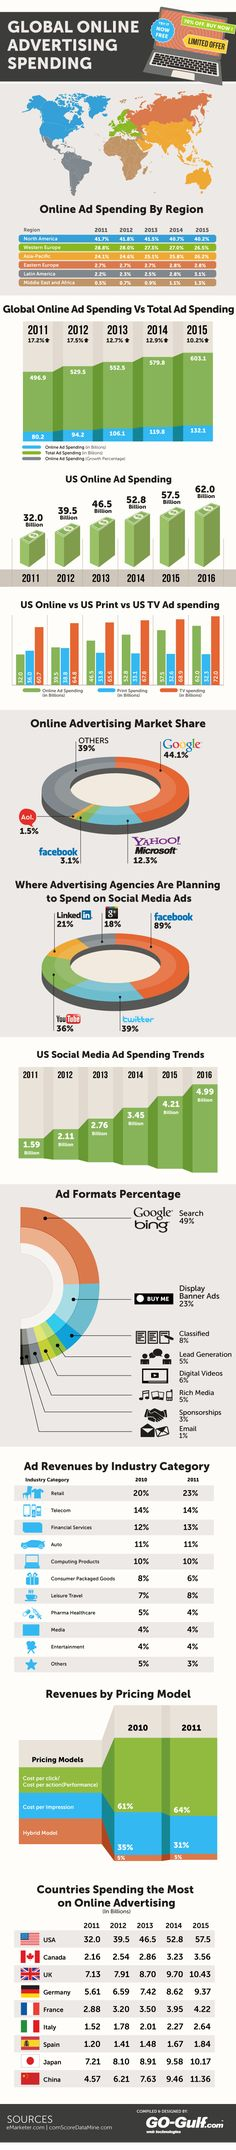 Global online #Advertising spending